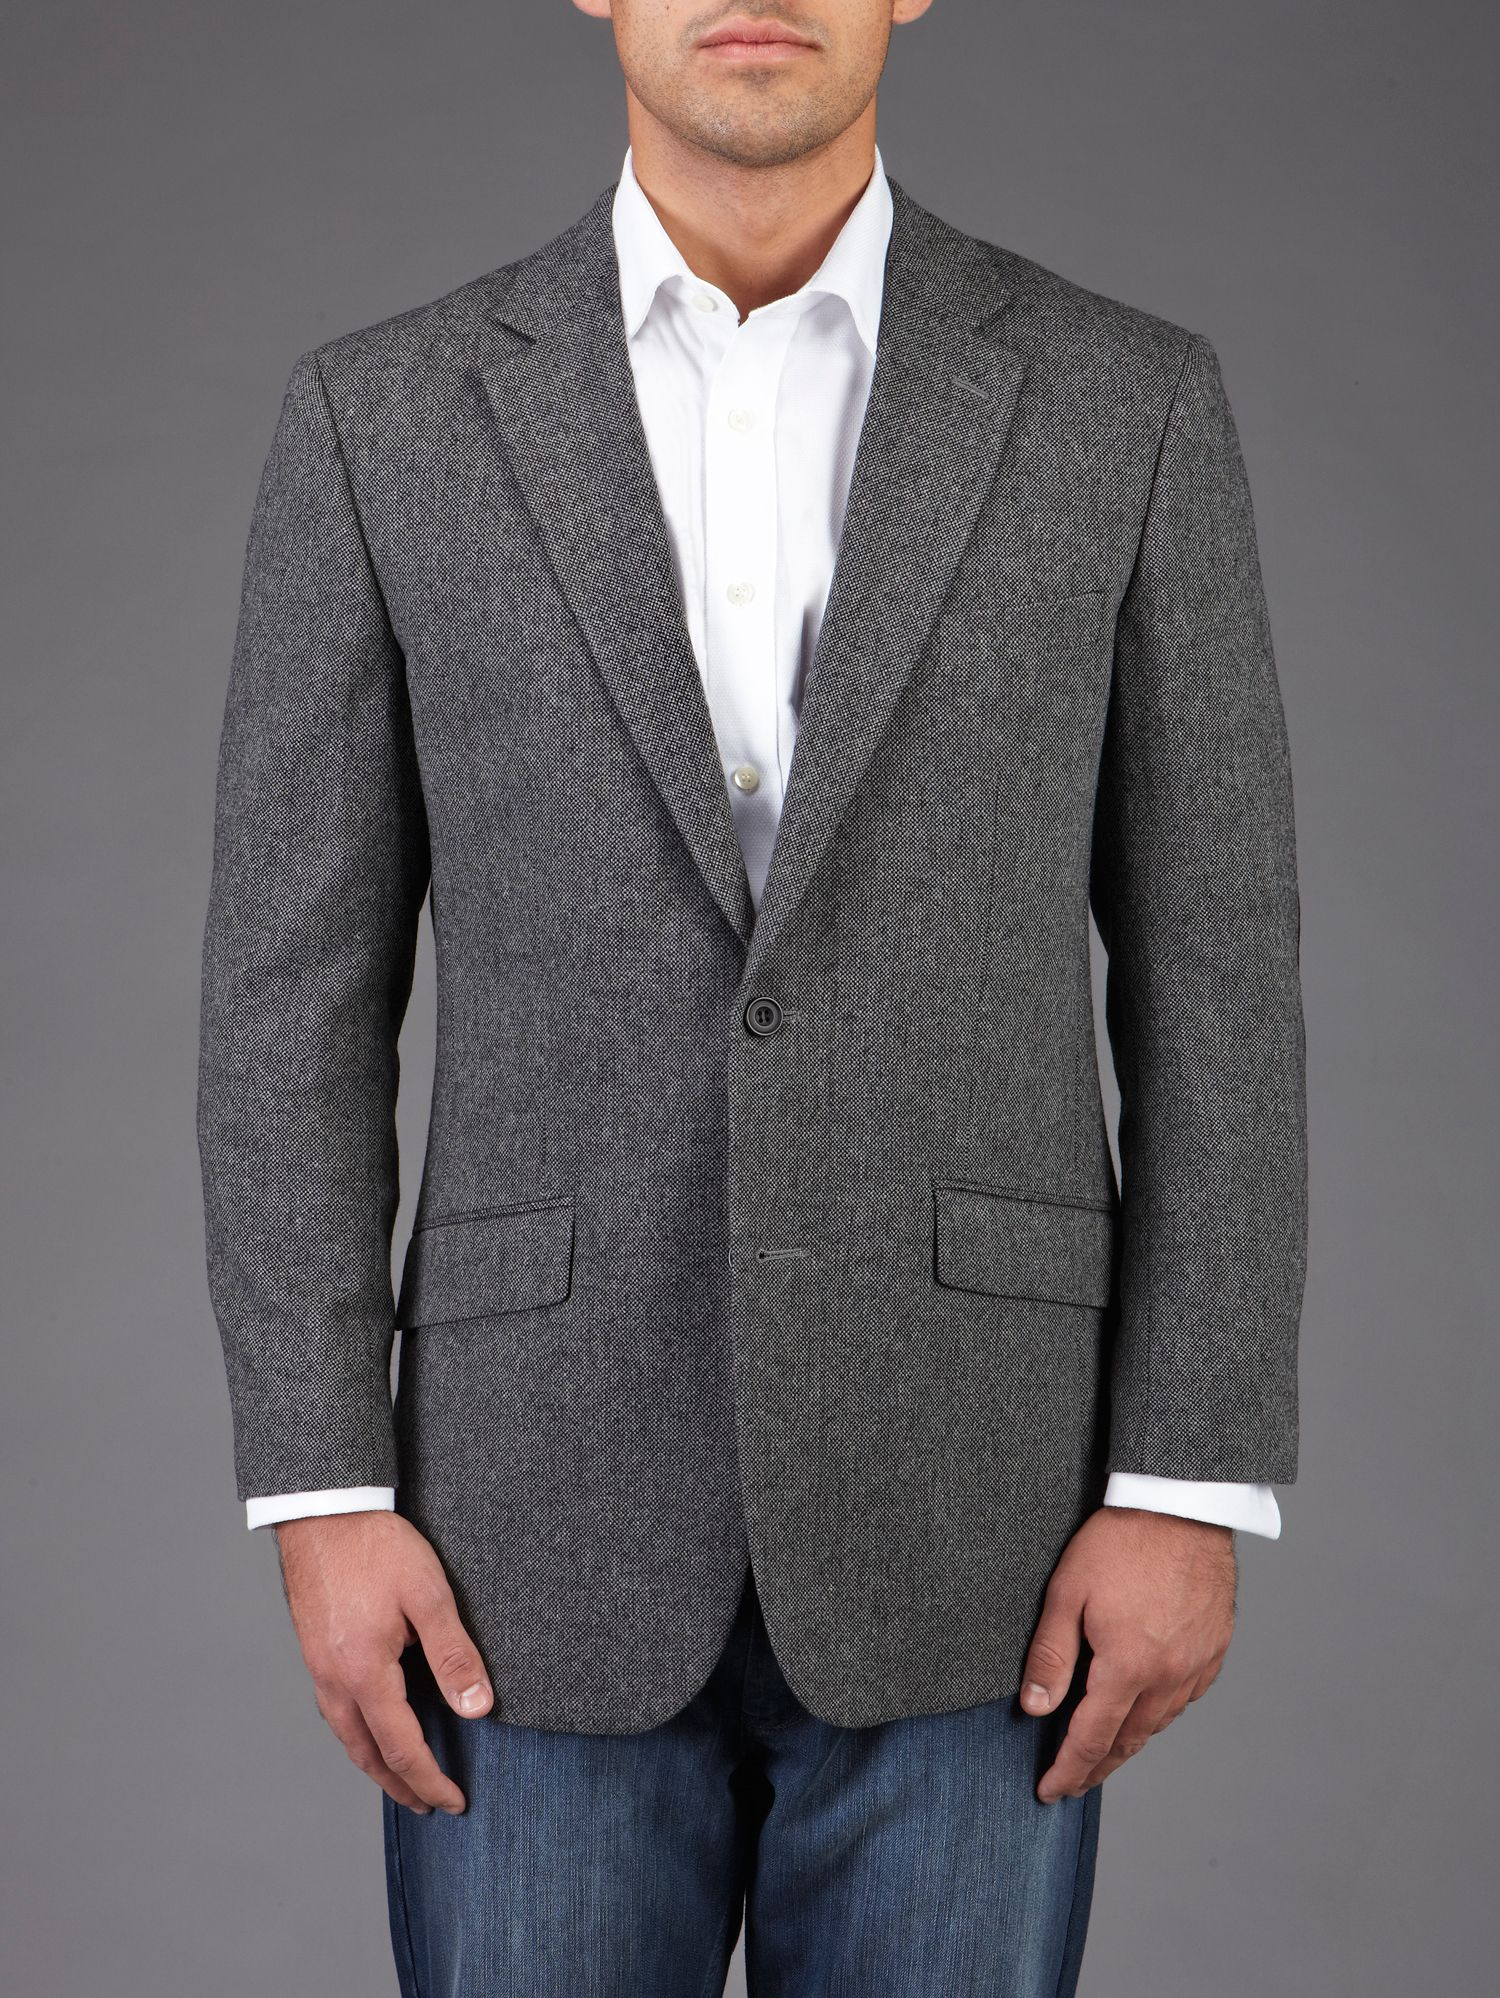 Aysgarth sports jacket